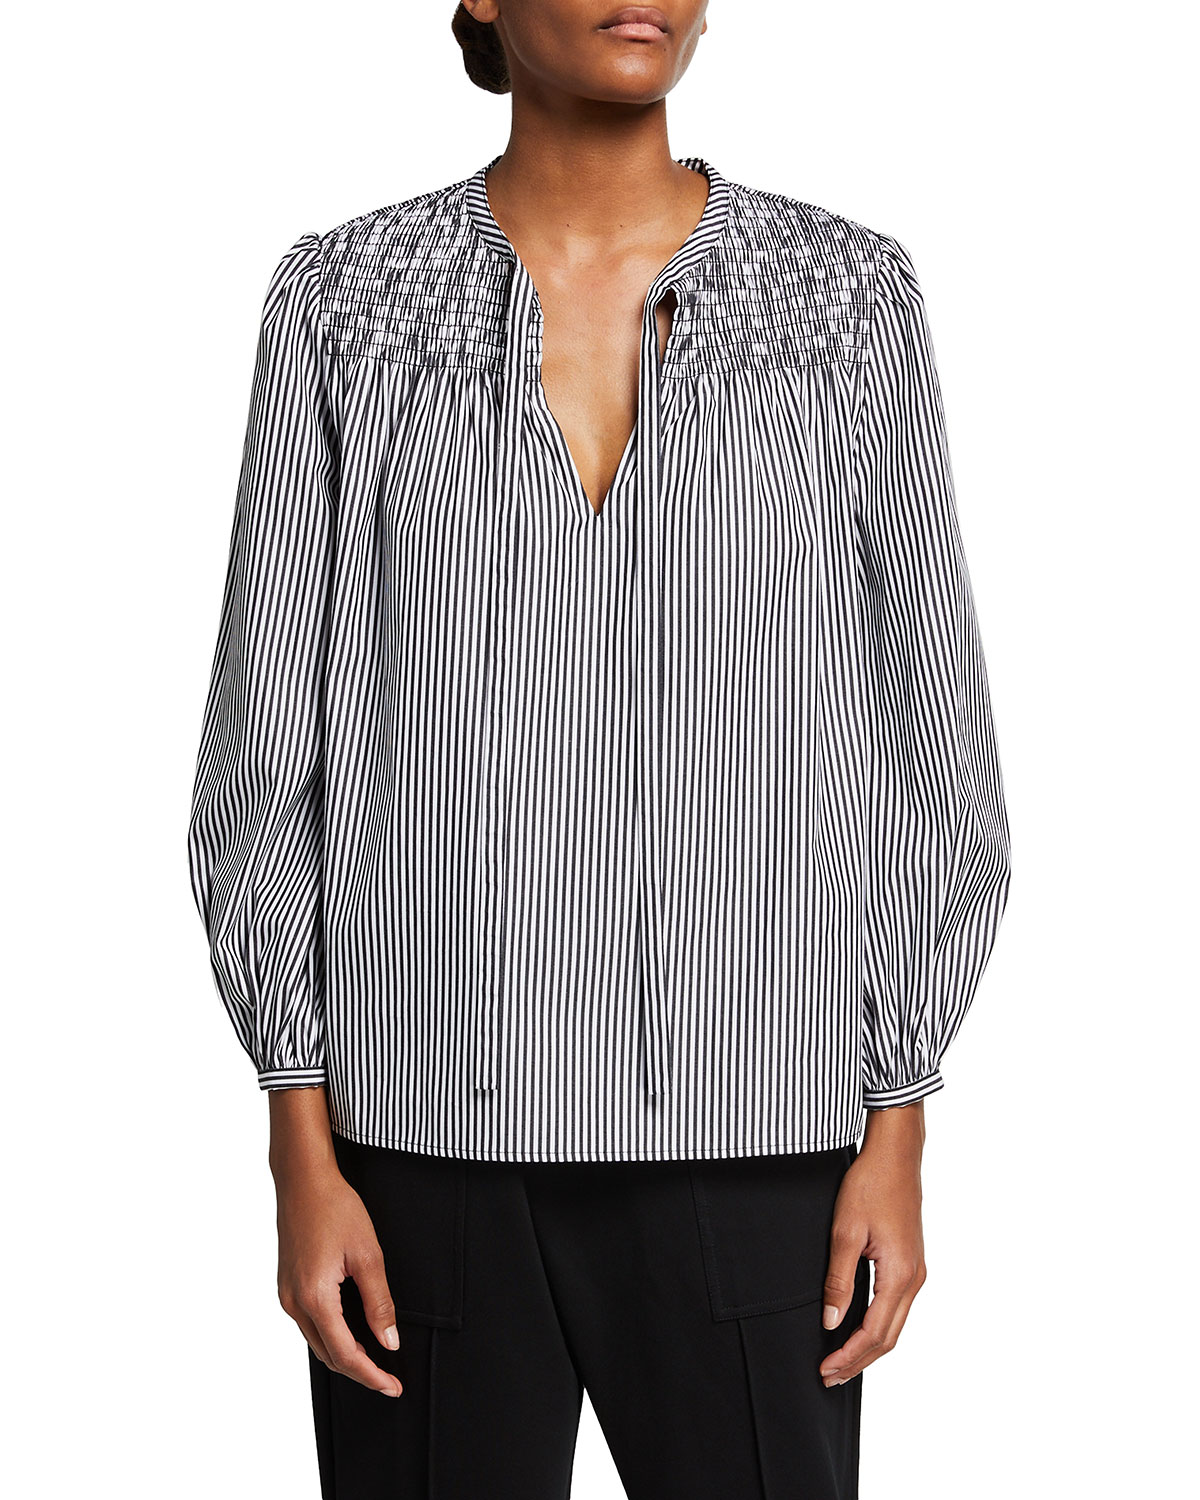 Austin Long-Sleeve Smocked Blouse with Ties